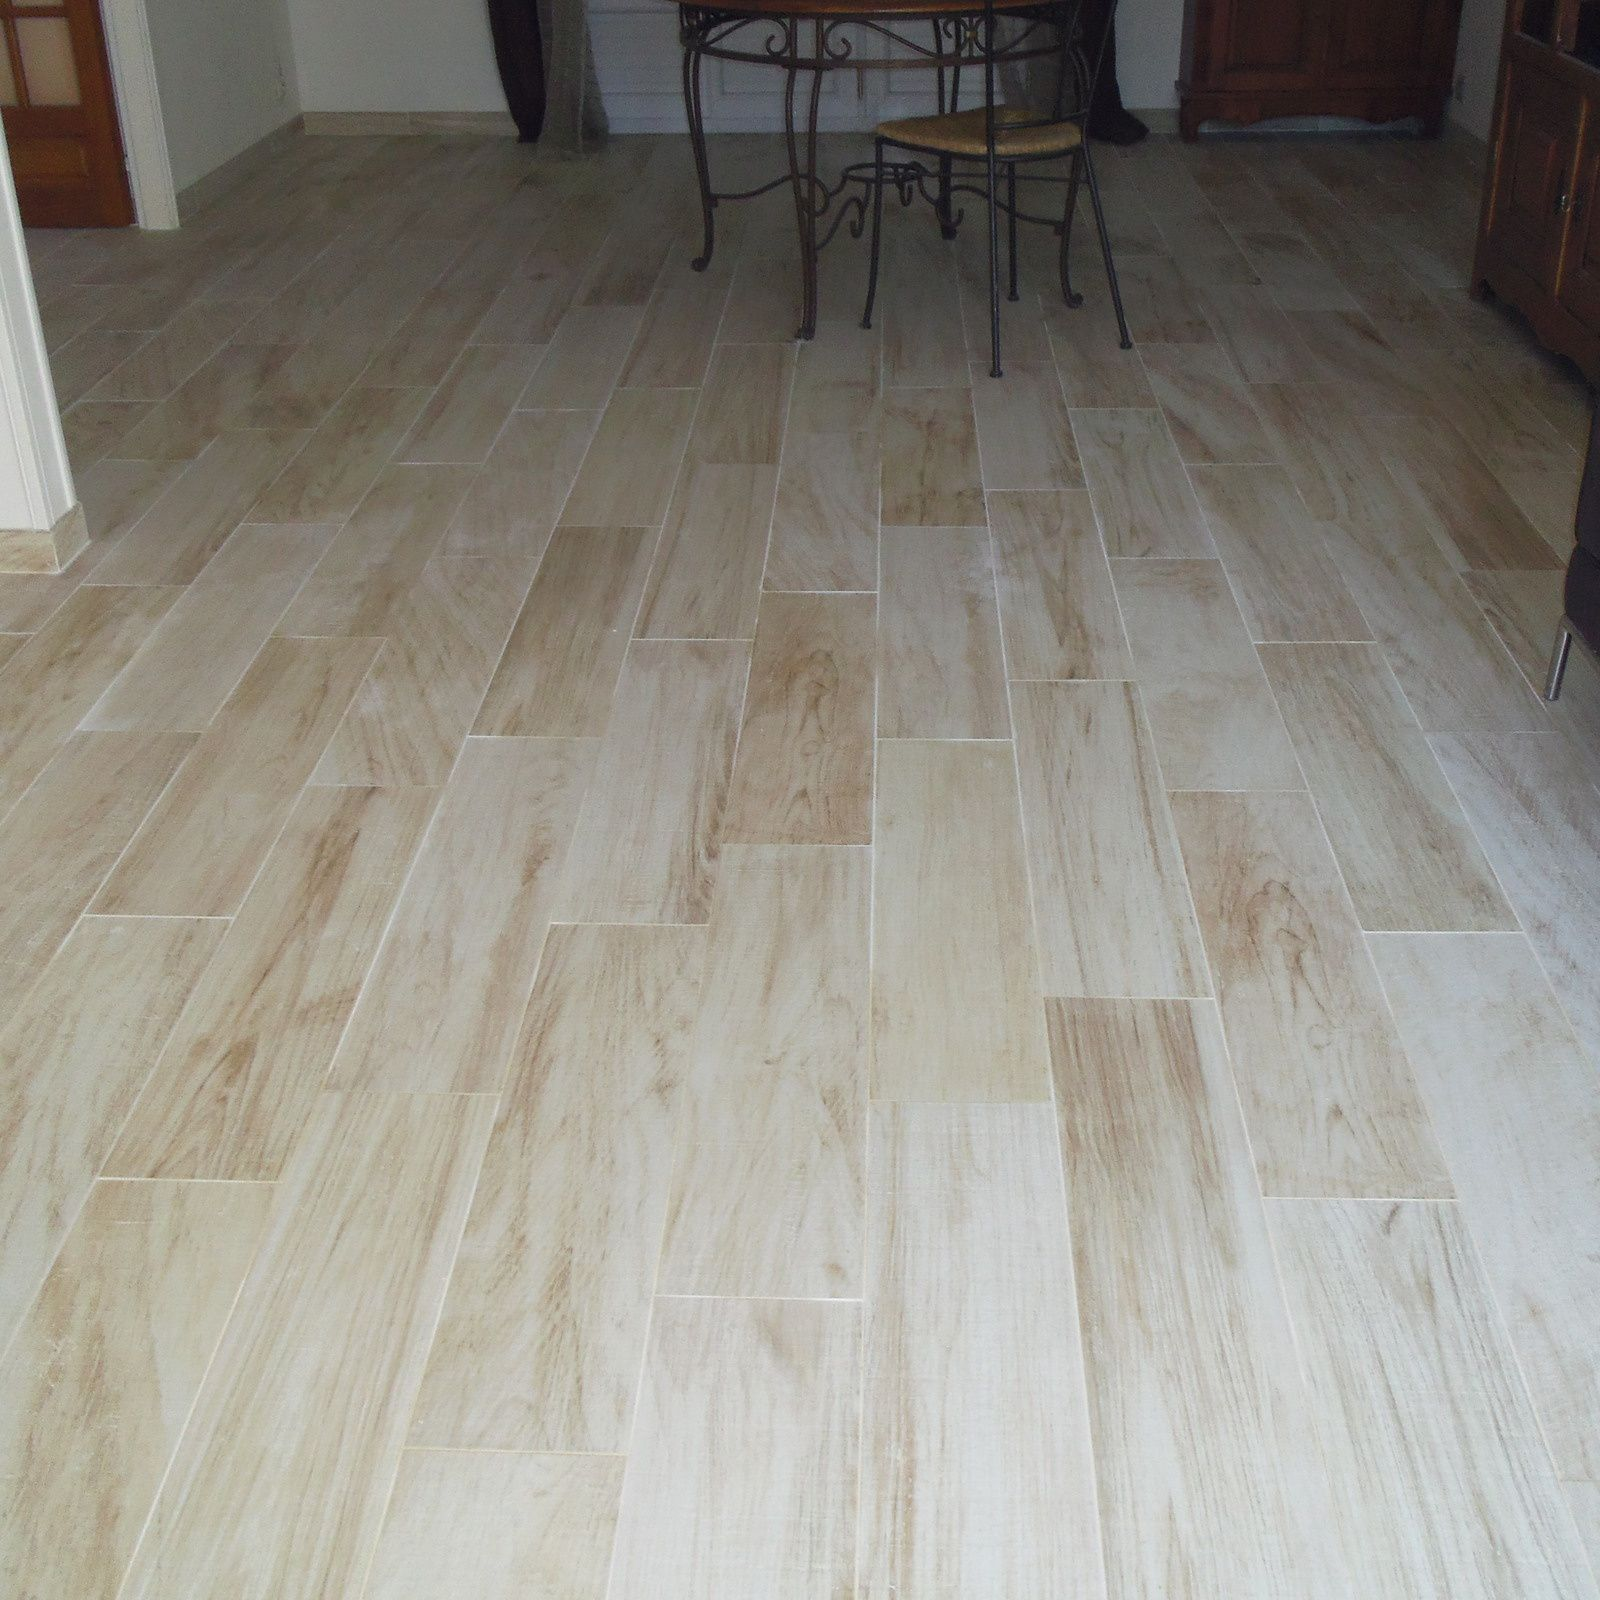 Pose de carrelage imitation parquet for Pose de carrelage sur parquet